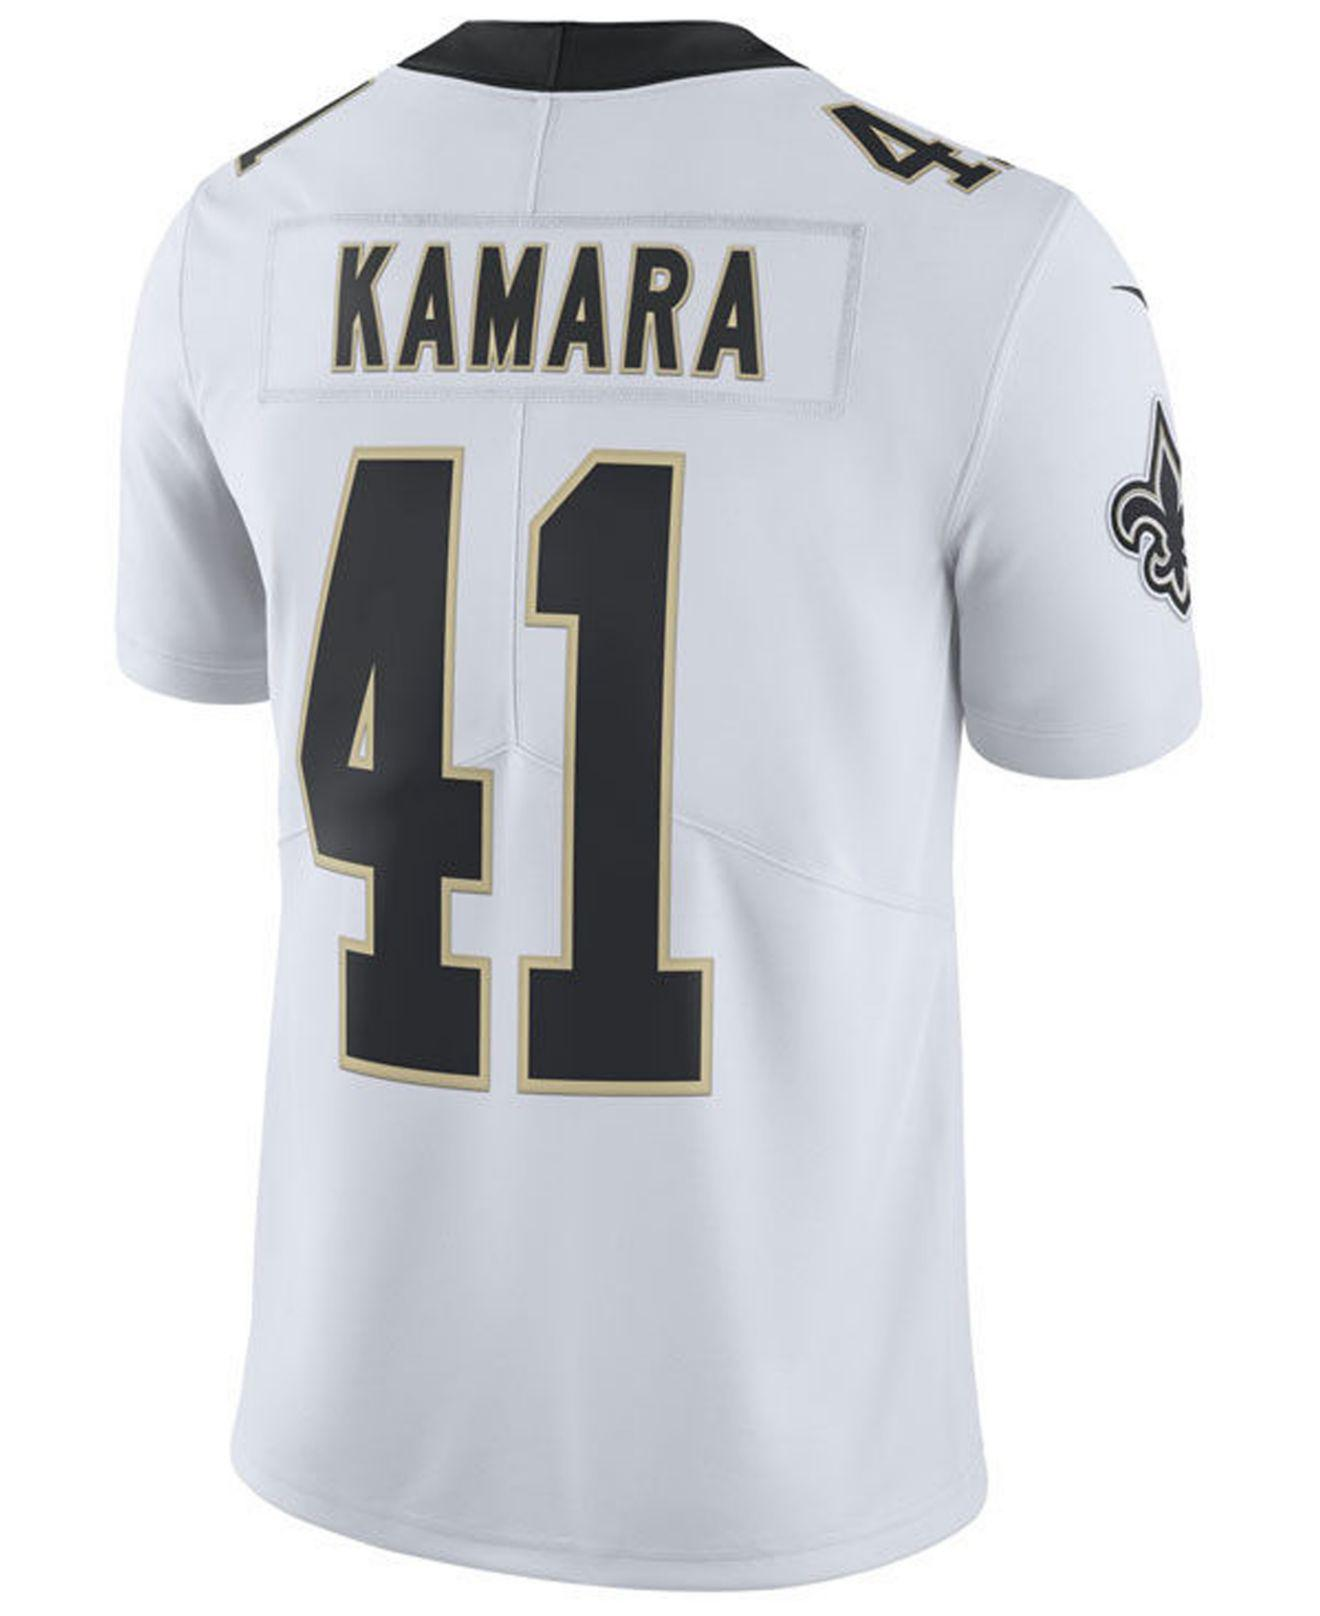 Lyst - Nike Alvin Kamara New Orleans Saints Vapor Untouchable Limited Jersey  in White for Men 3f0373082